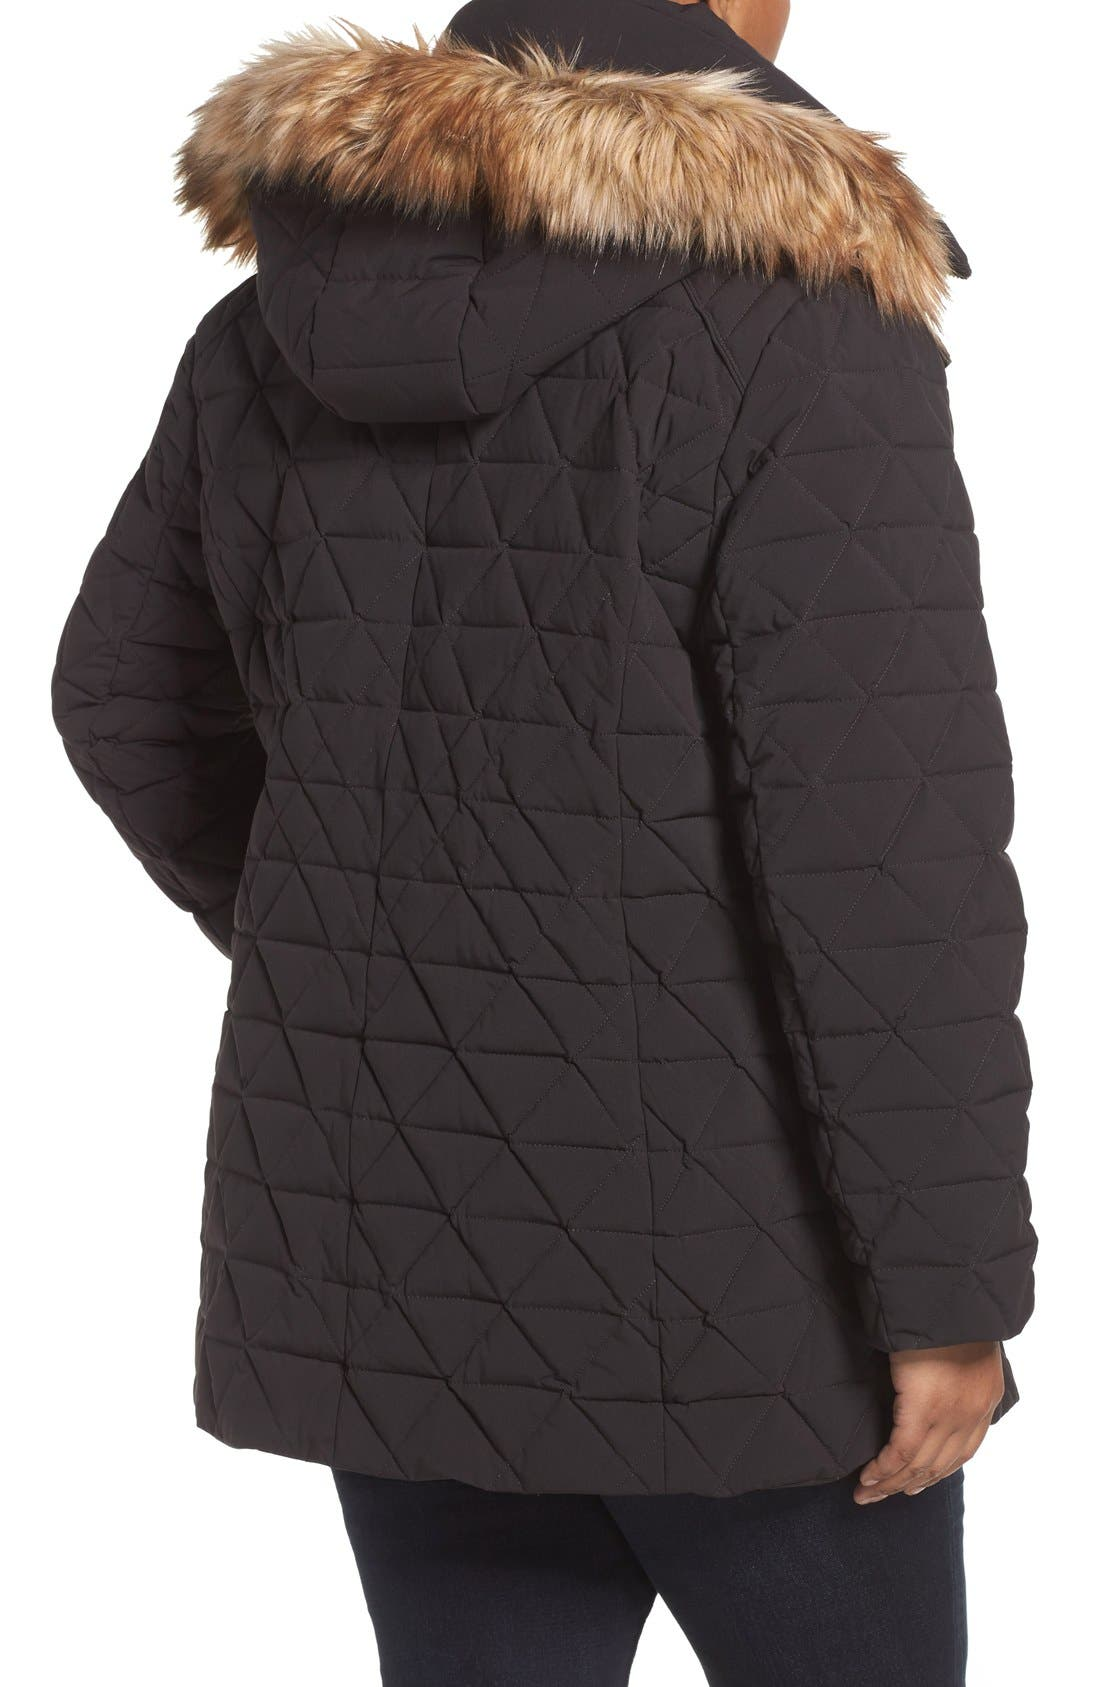 Alternate Image 2  - Andrew Marc Down Jacket with Faux Fur Trim Hood (Plus Size)